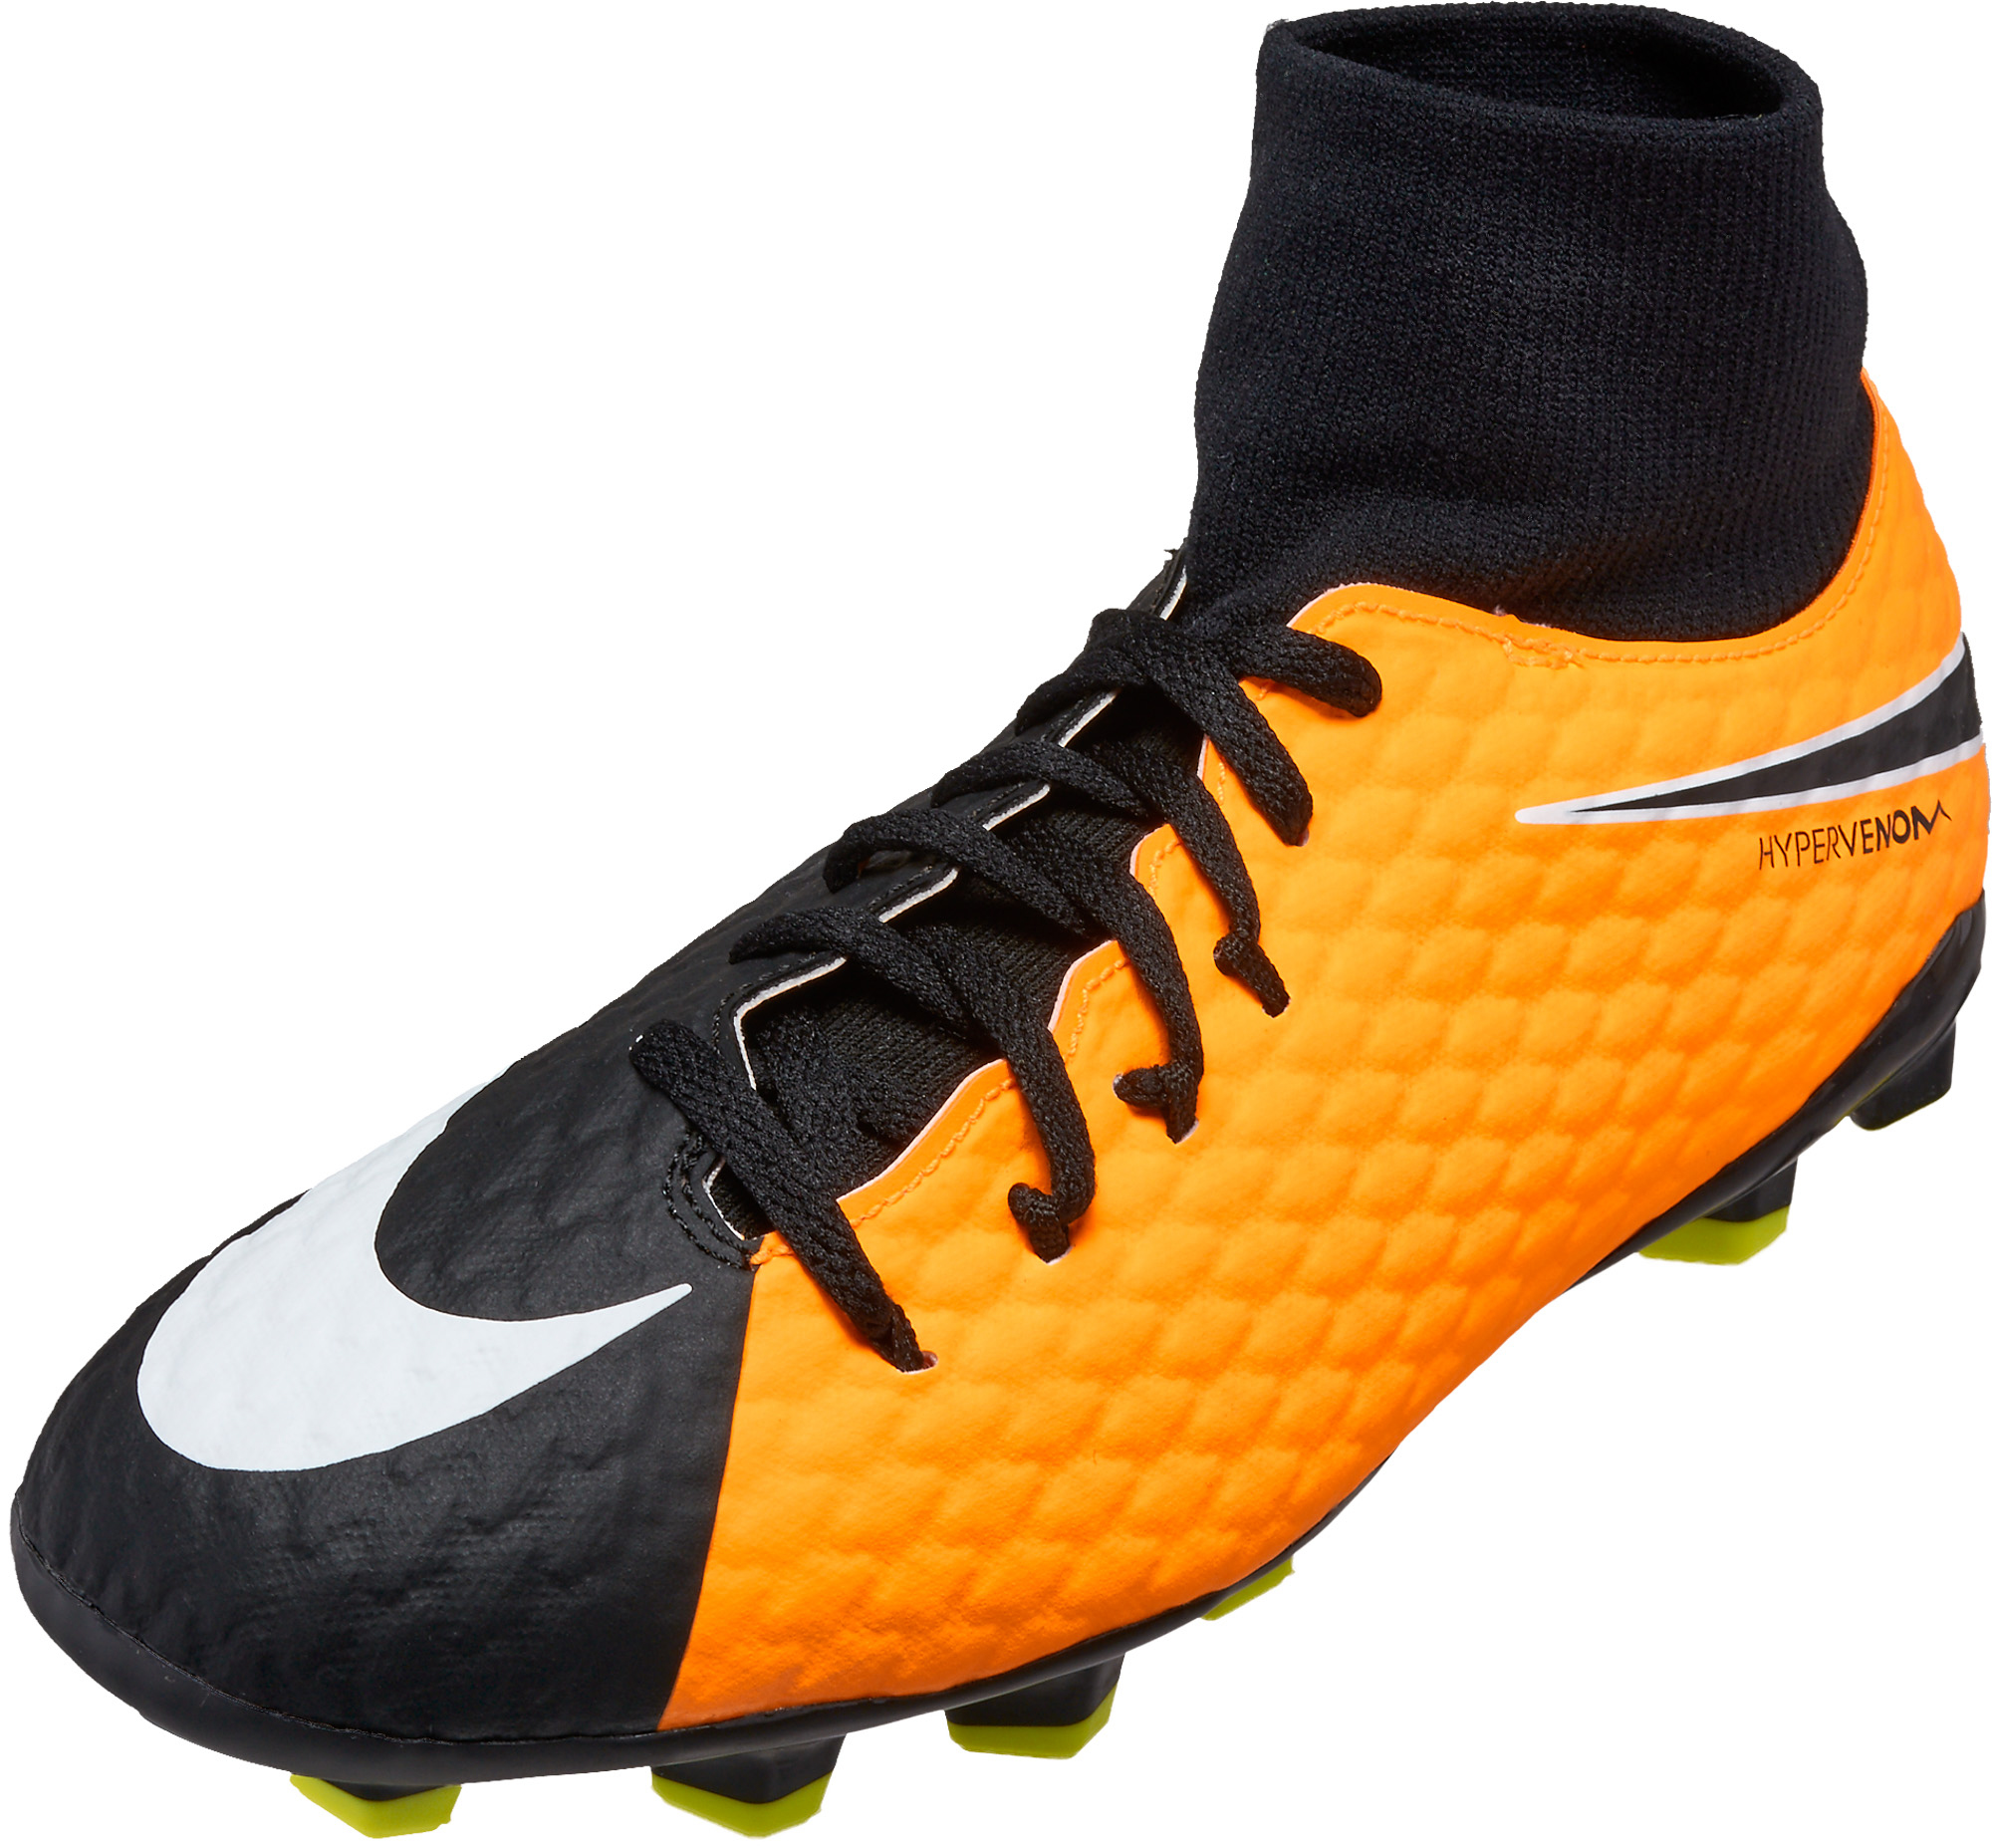 aaa3d4b0bdf Nike Kids Hypervenom Phelon III DF FG Soccer Cleats – Laser Orange   Black